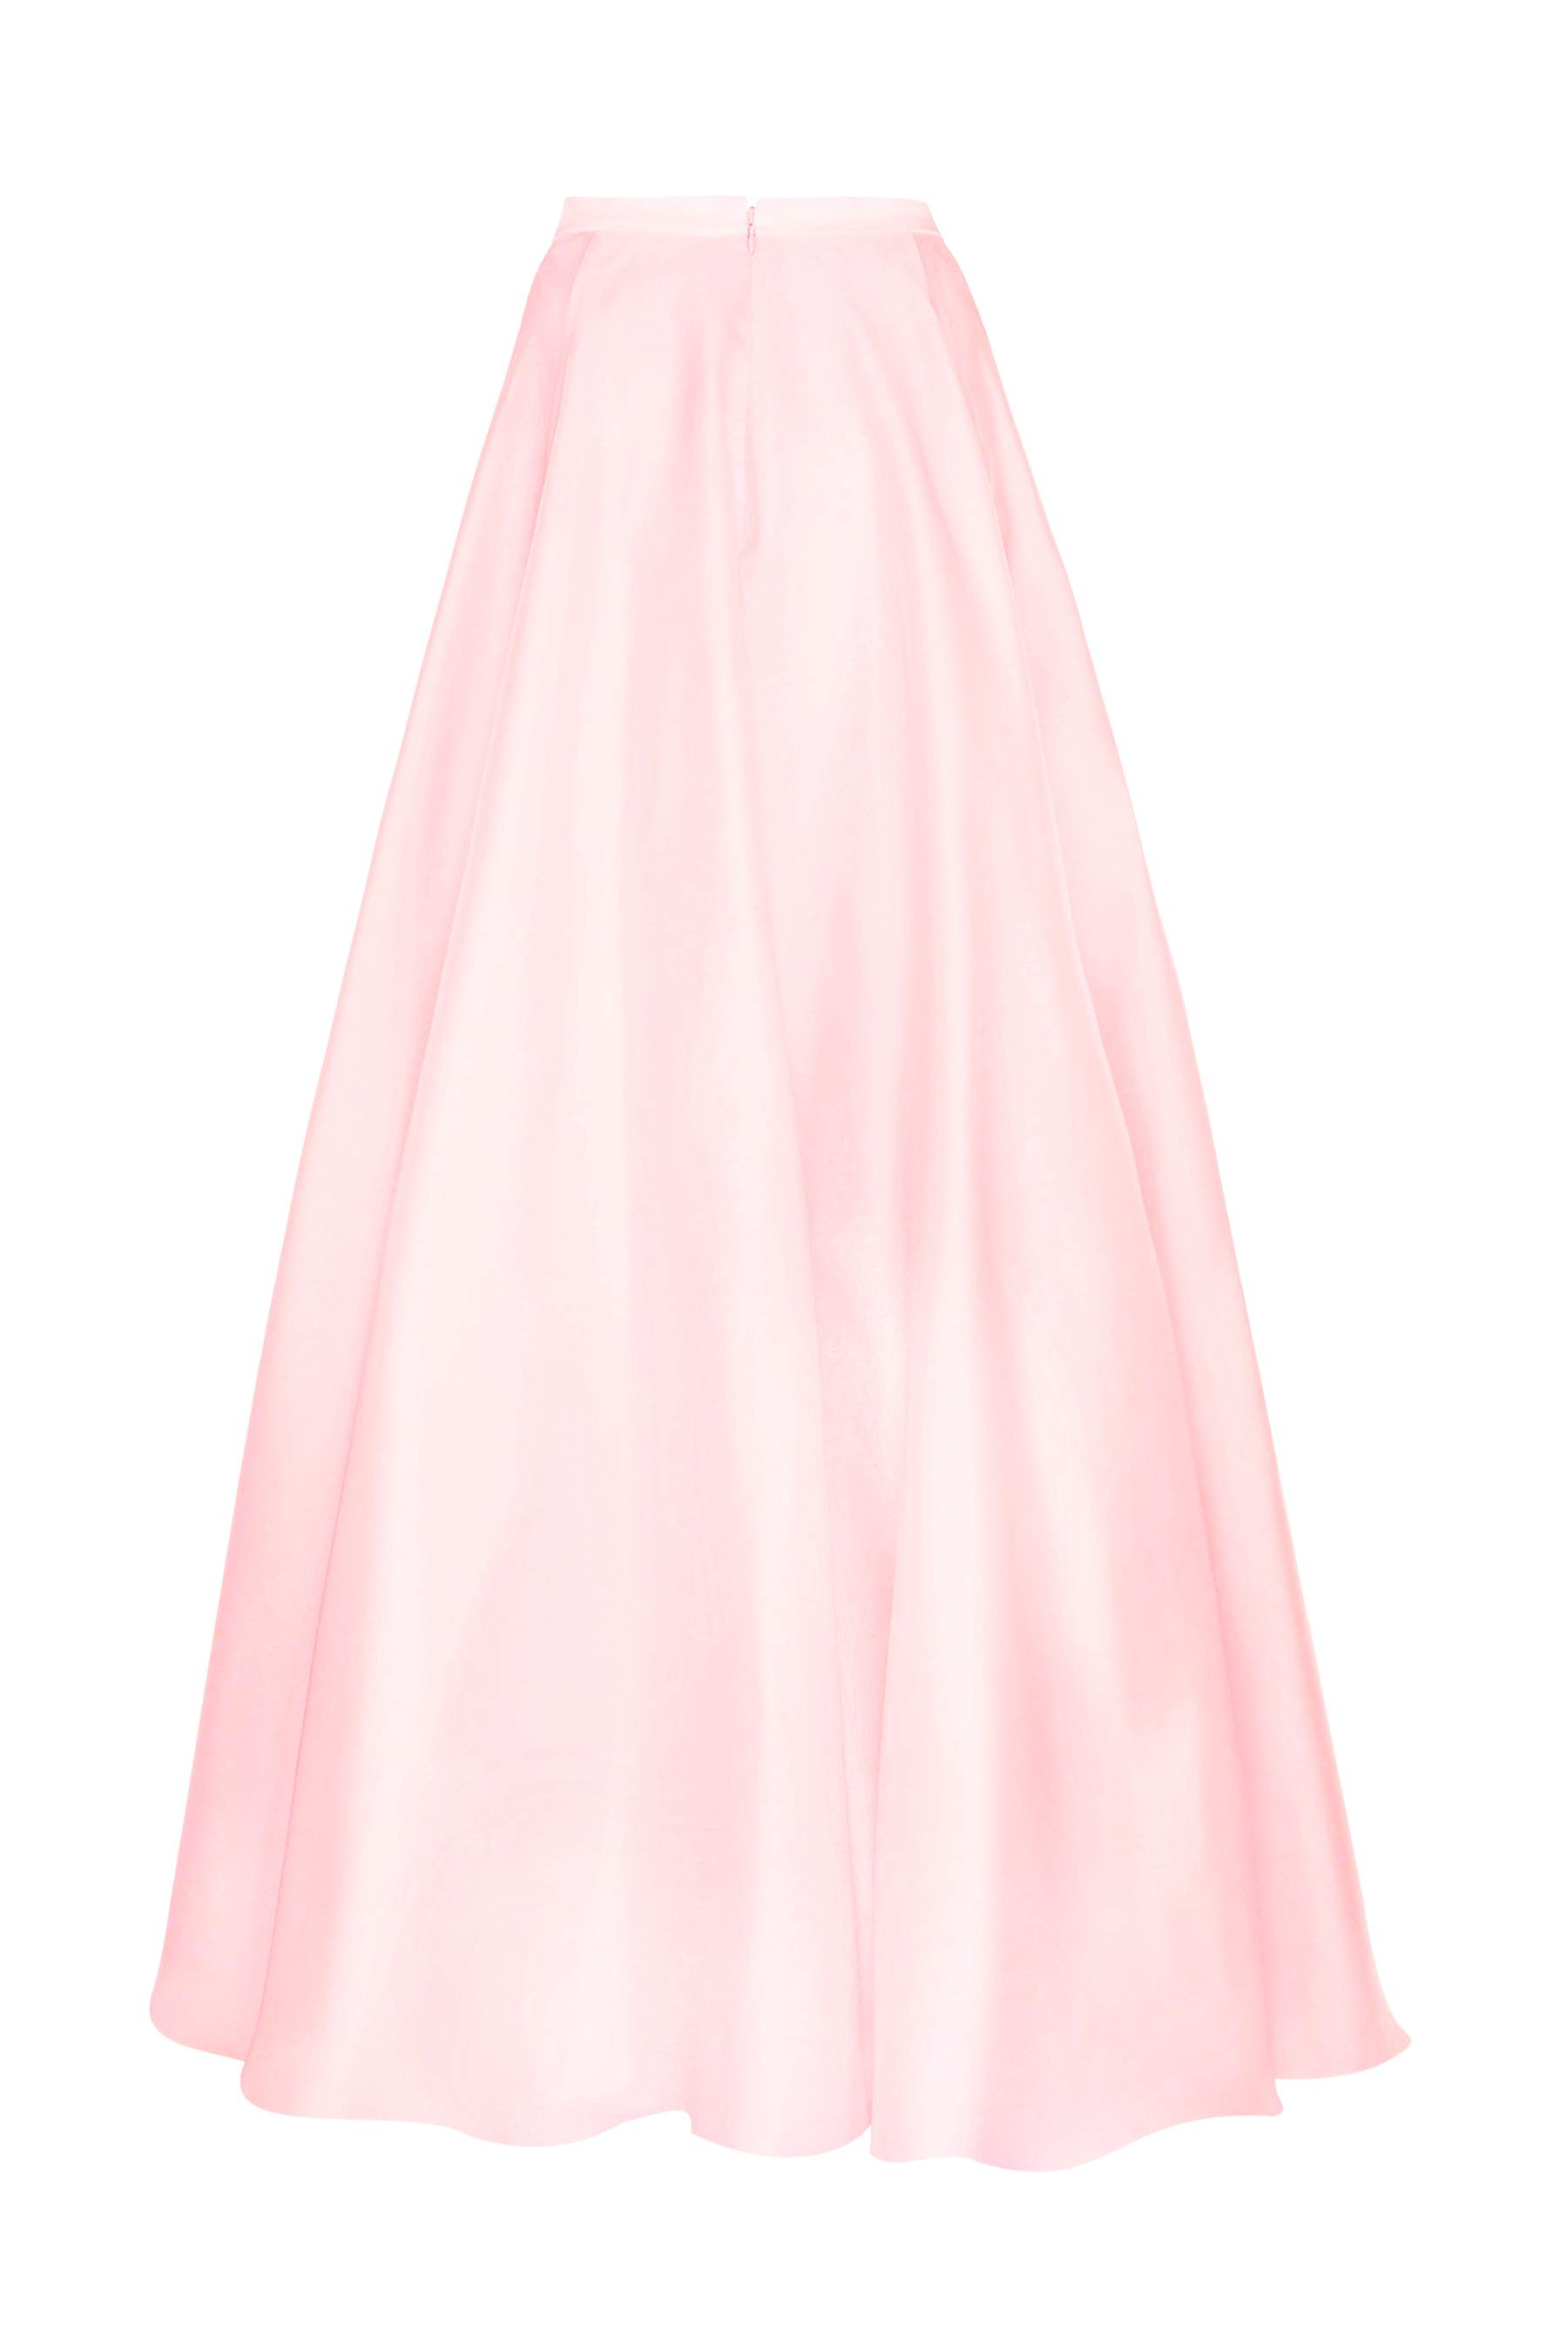 A-line Skirt rose colored